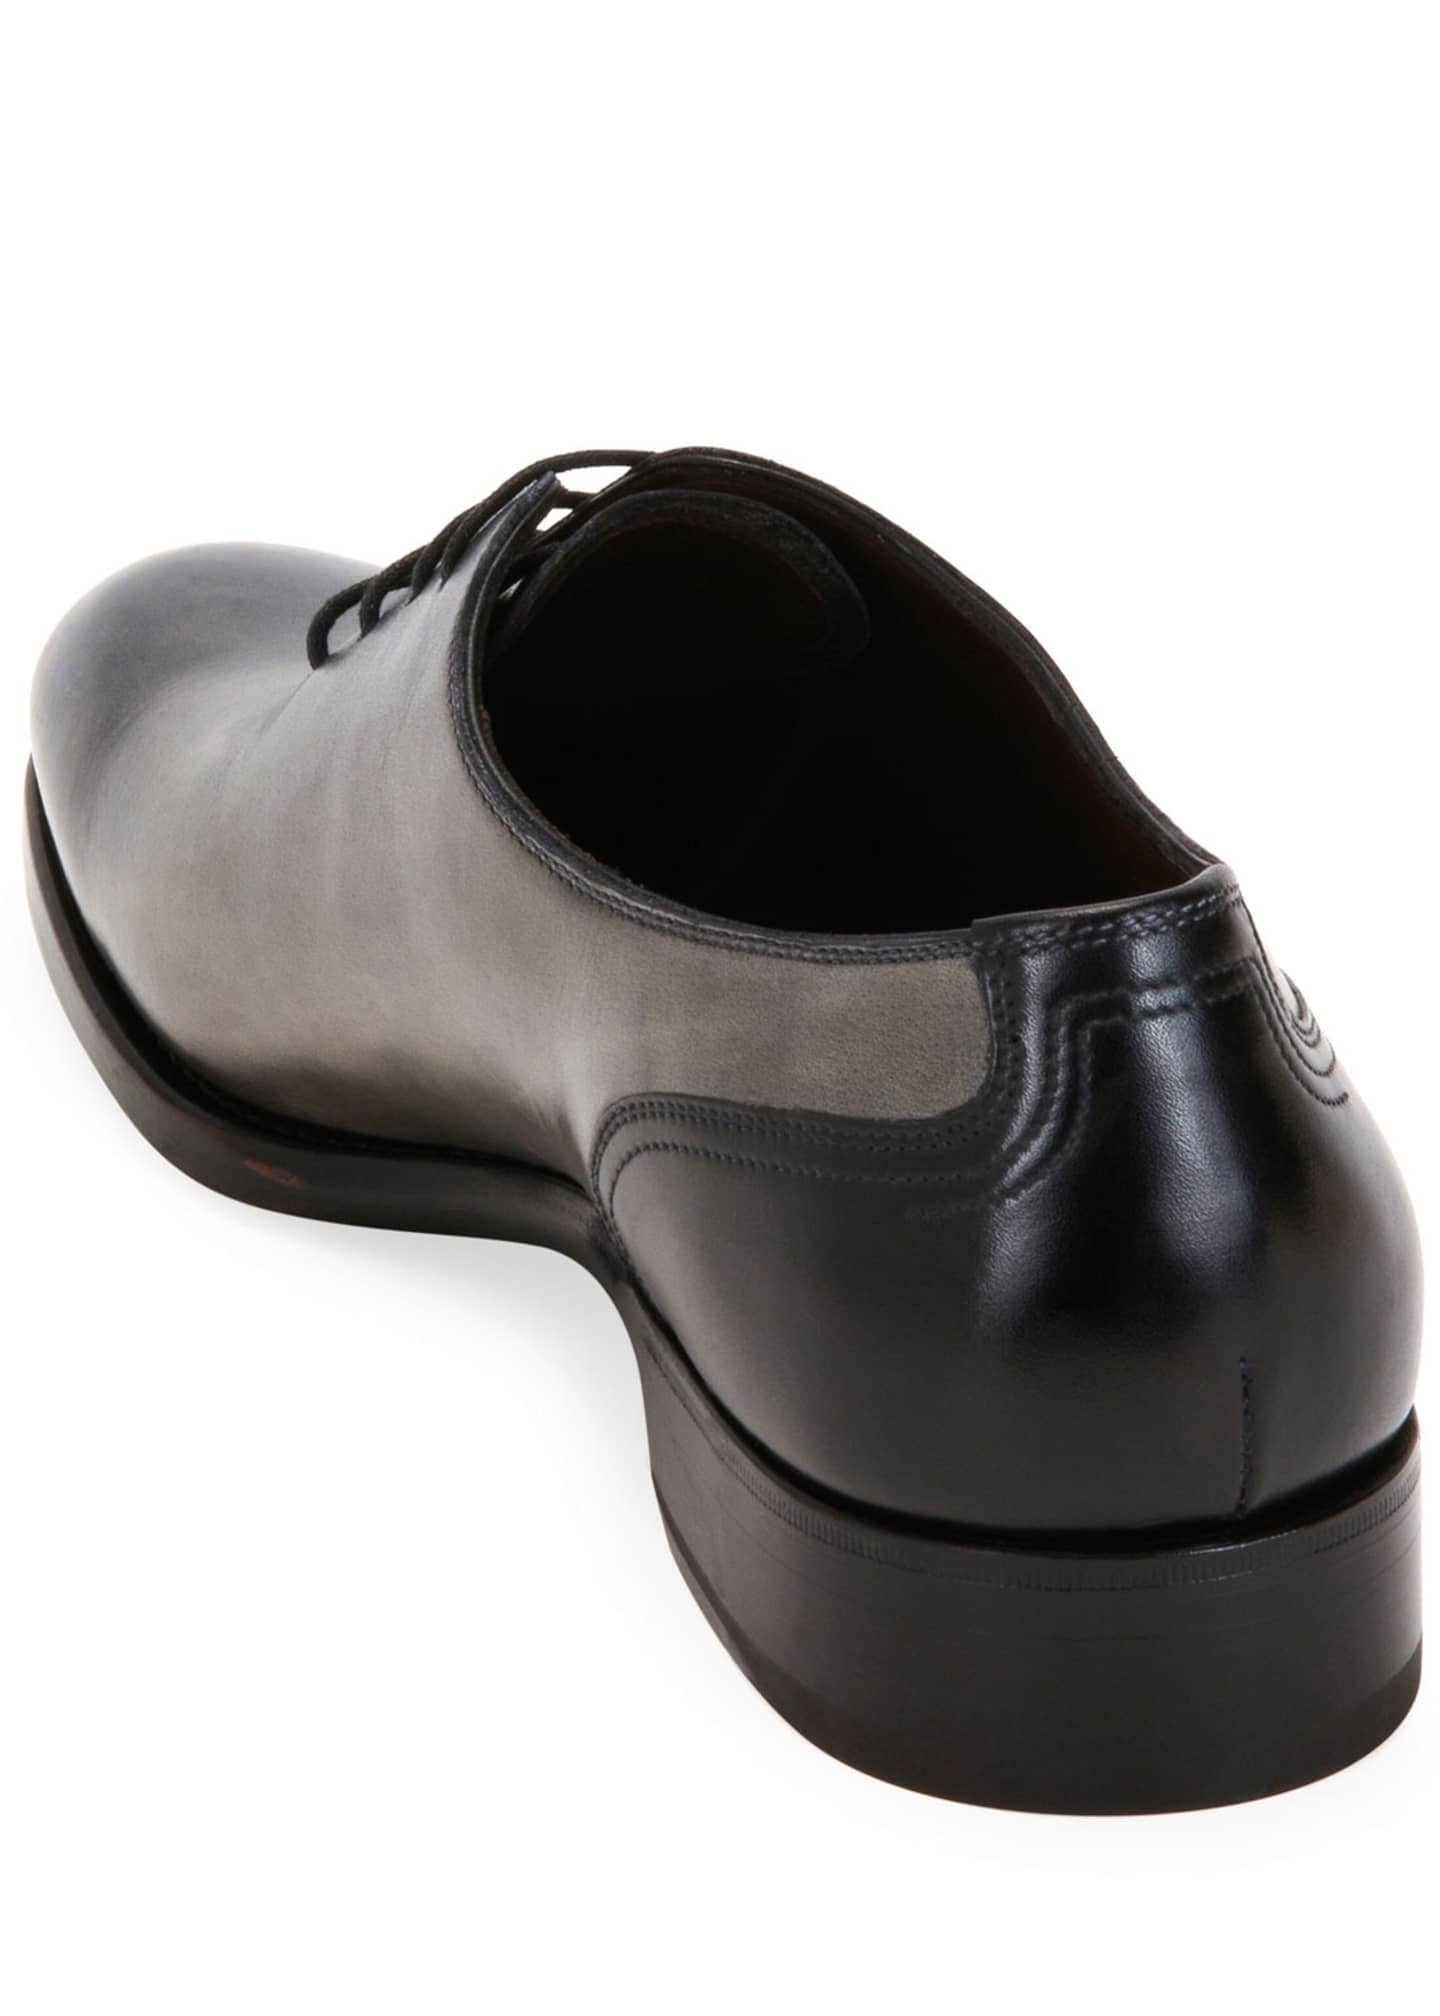 Image 4 of 4: Men's Barclay Burnished Leather Oxford Shoes